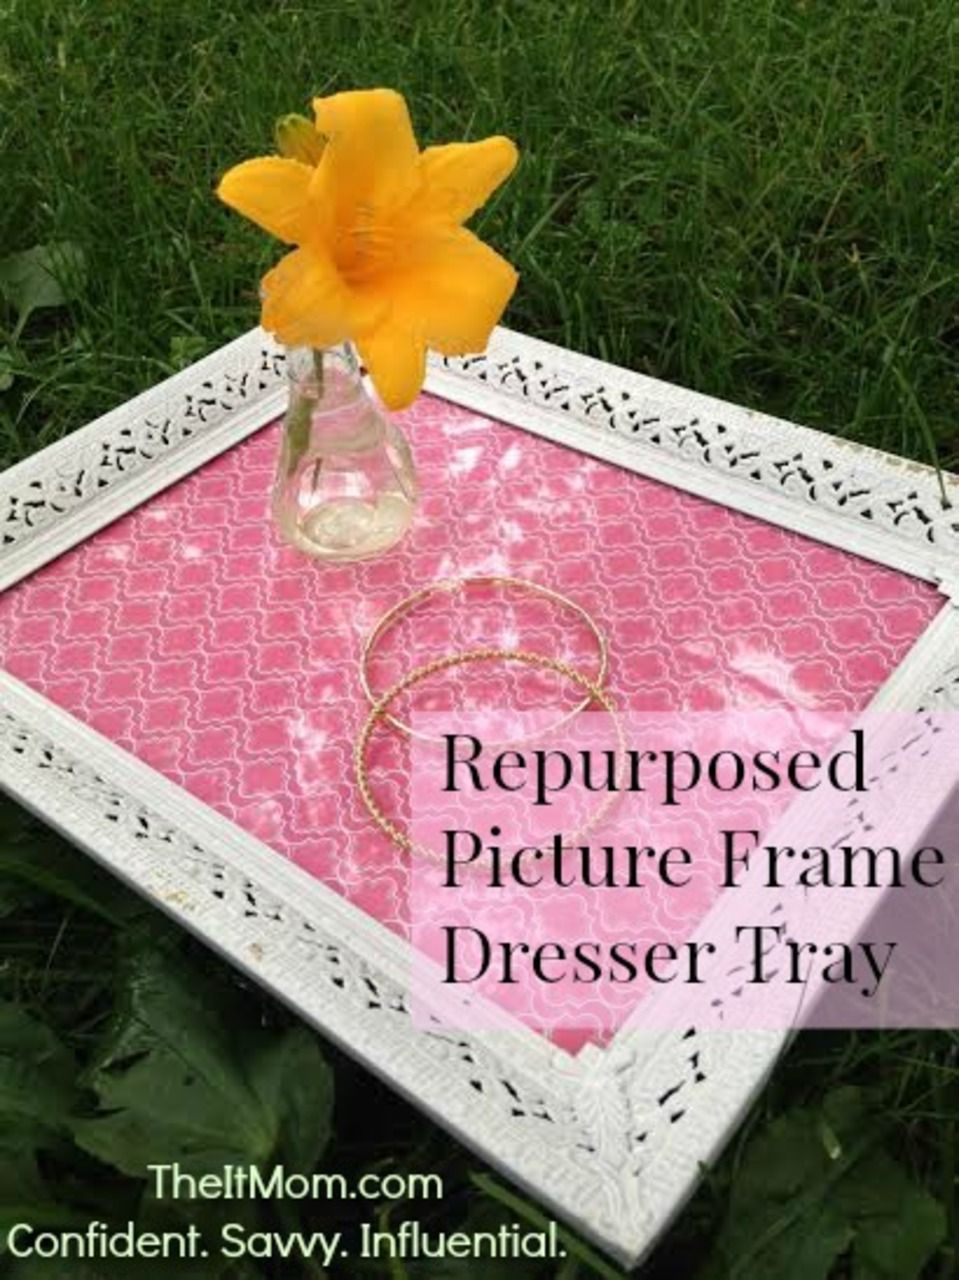 Repurposed Picture Frame Dresser Tray. Definitely making this. It's too cute!